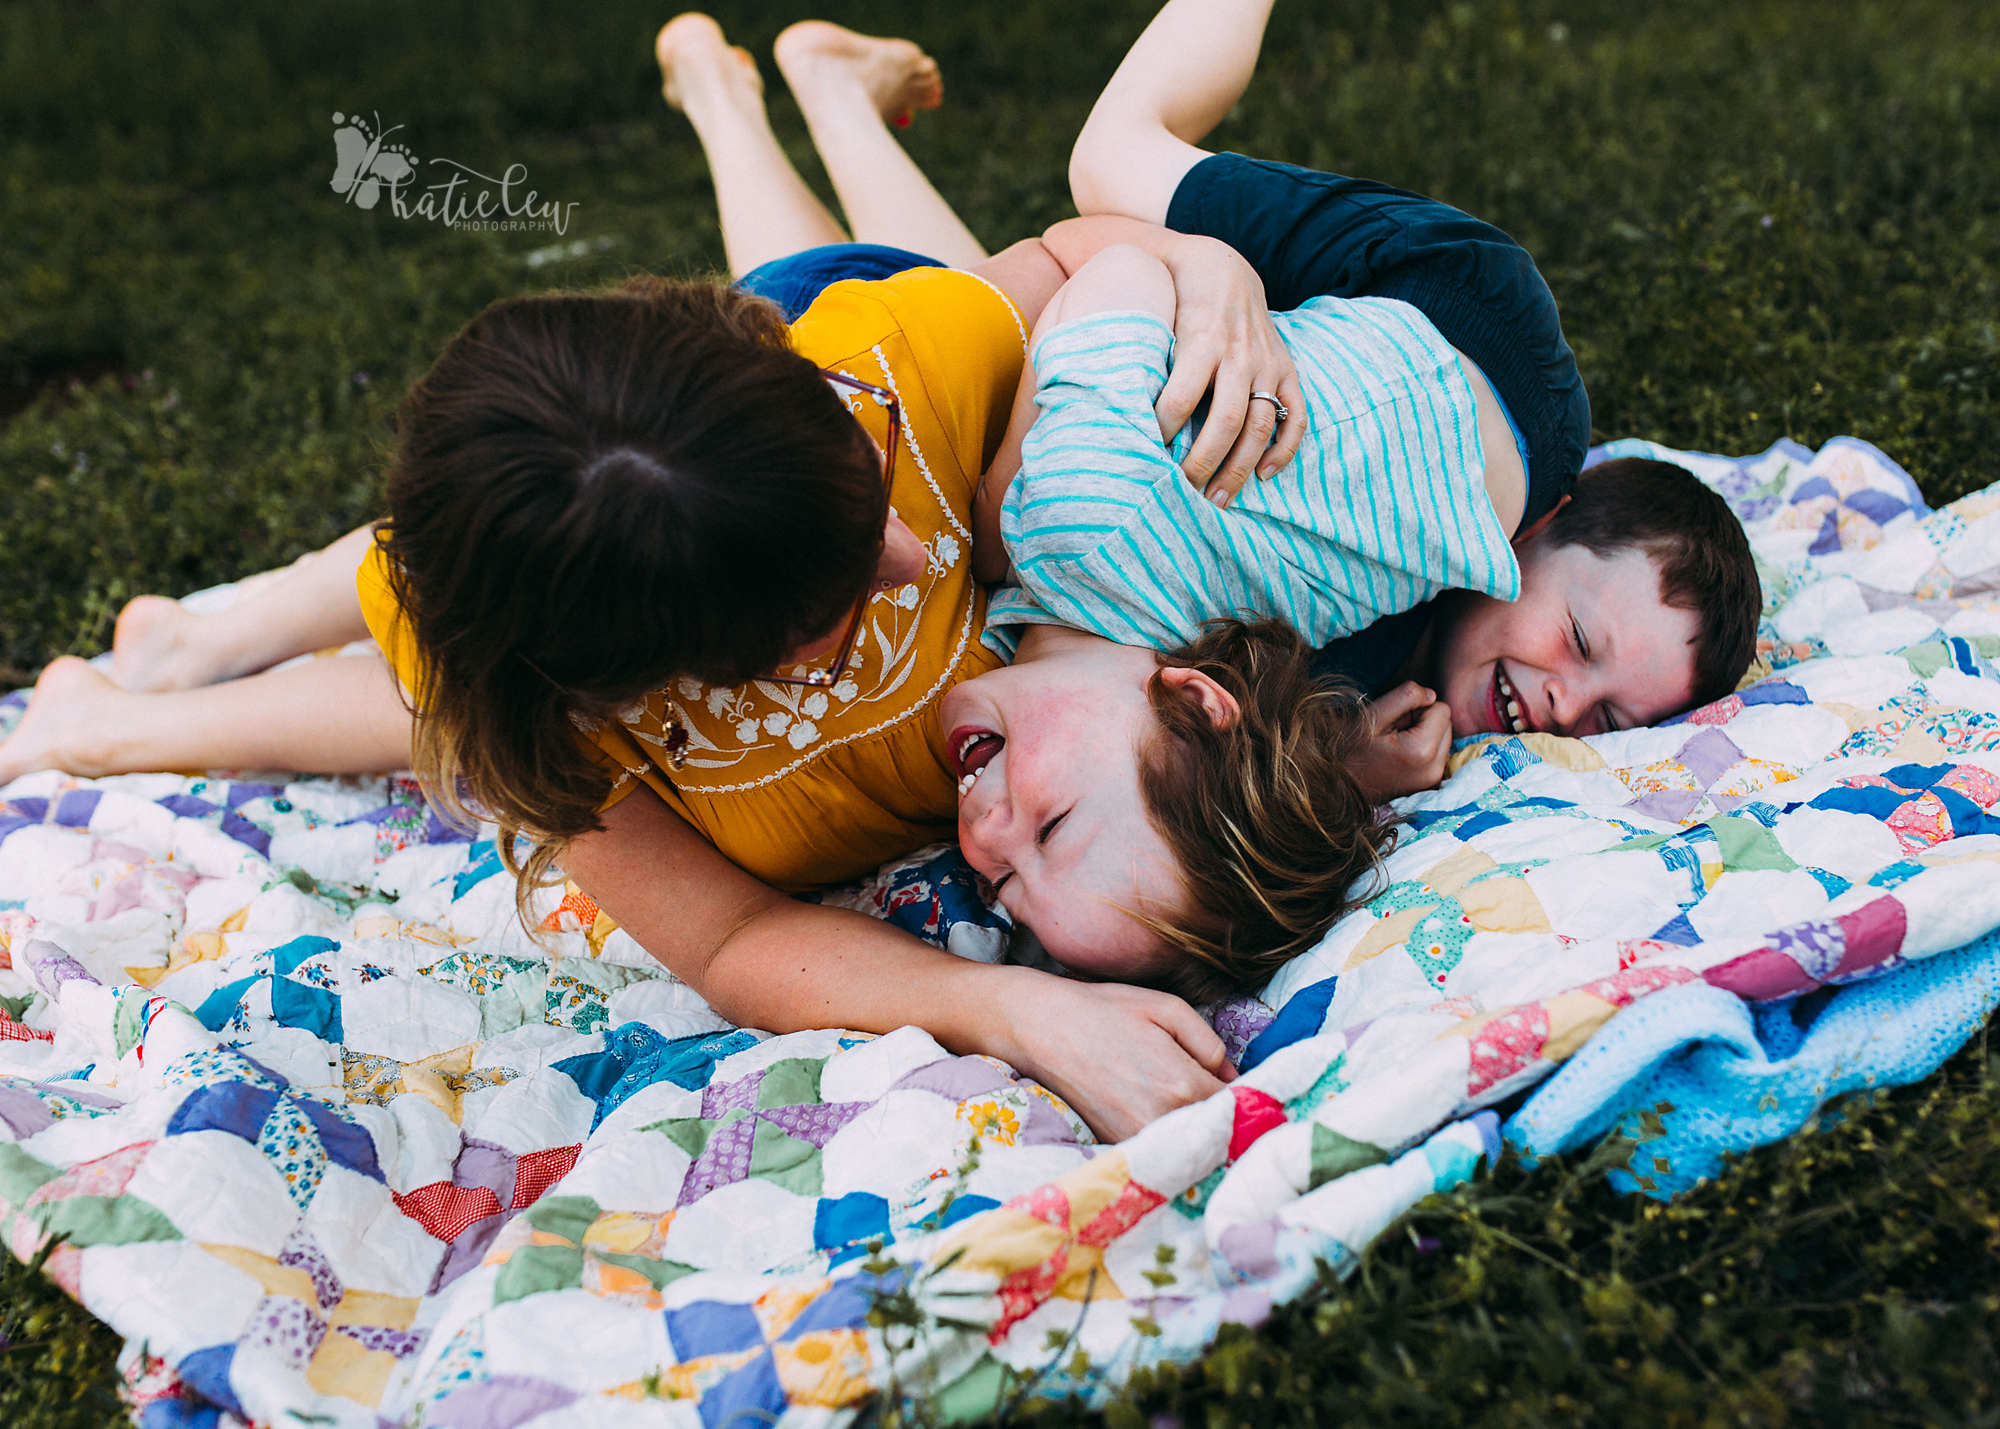 a mom on a quilt with her sons playing tickle